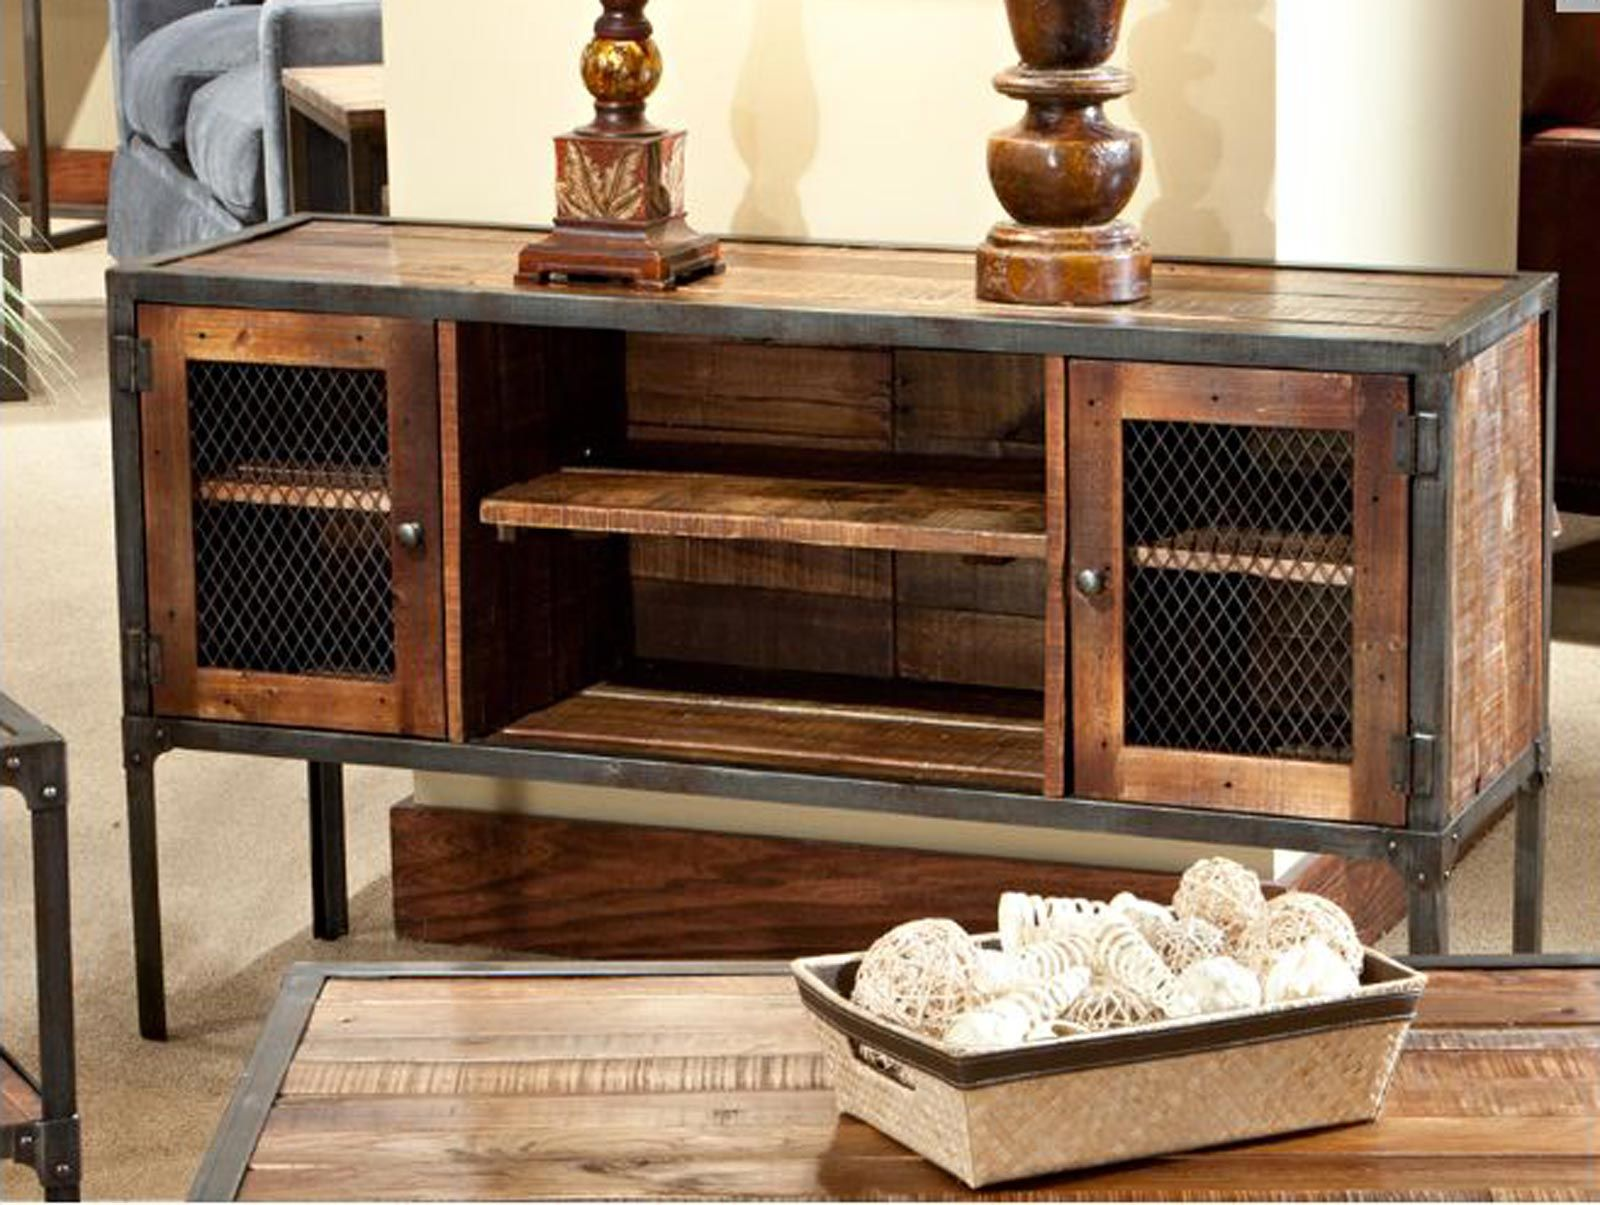 Iron reclaimed wood entertainment center rustic industrial reclaimed wood iron metal console - Sofa table with cabinets ...